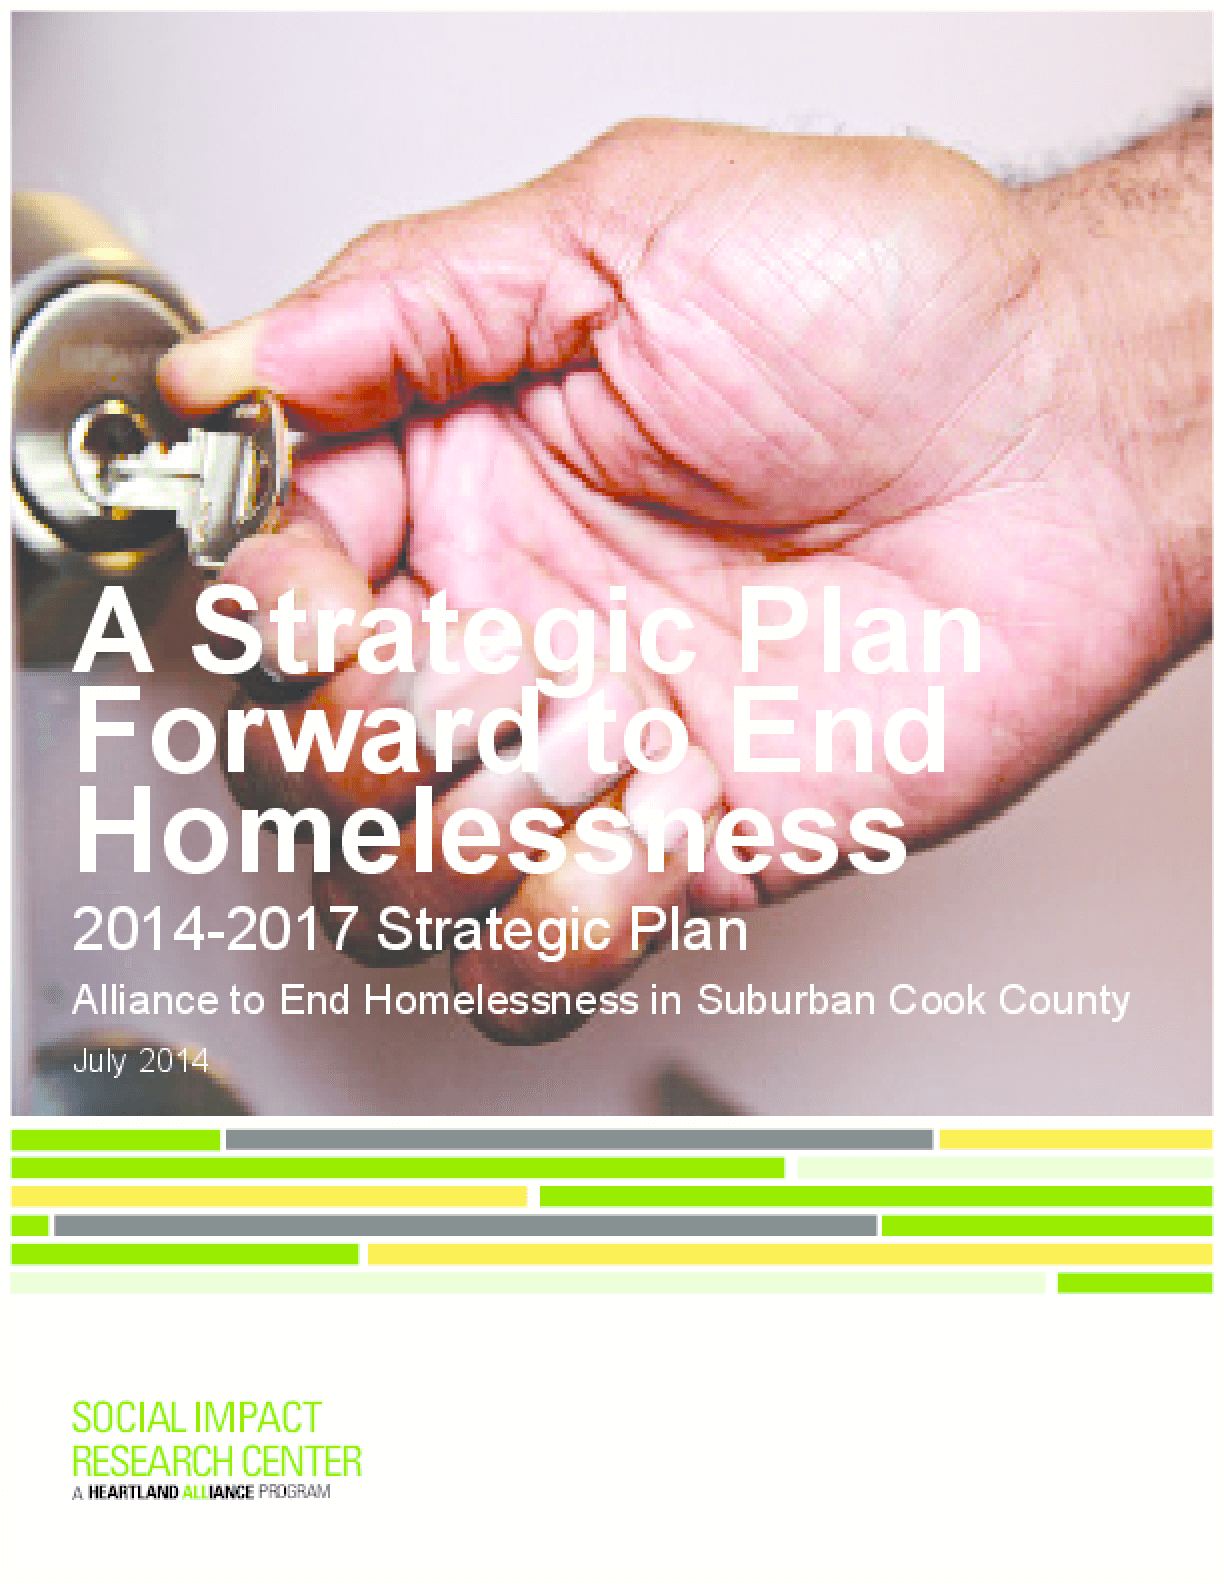 A Strategic Plan Forward to End Homelessness in Suburban Cook County